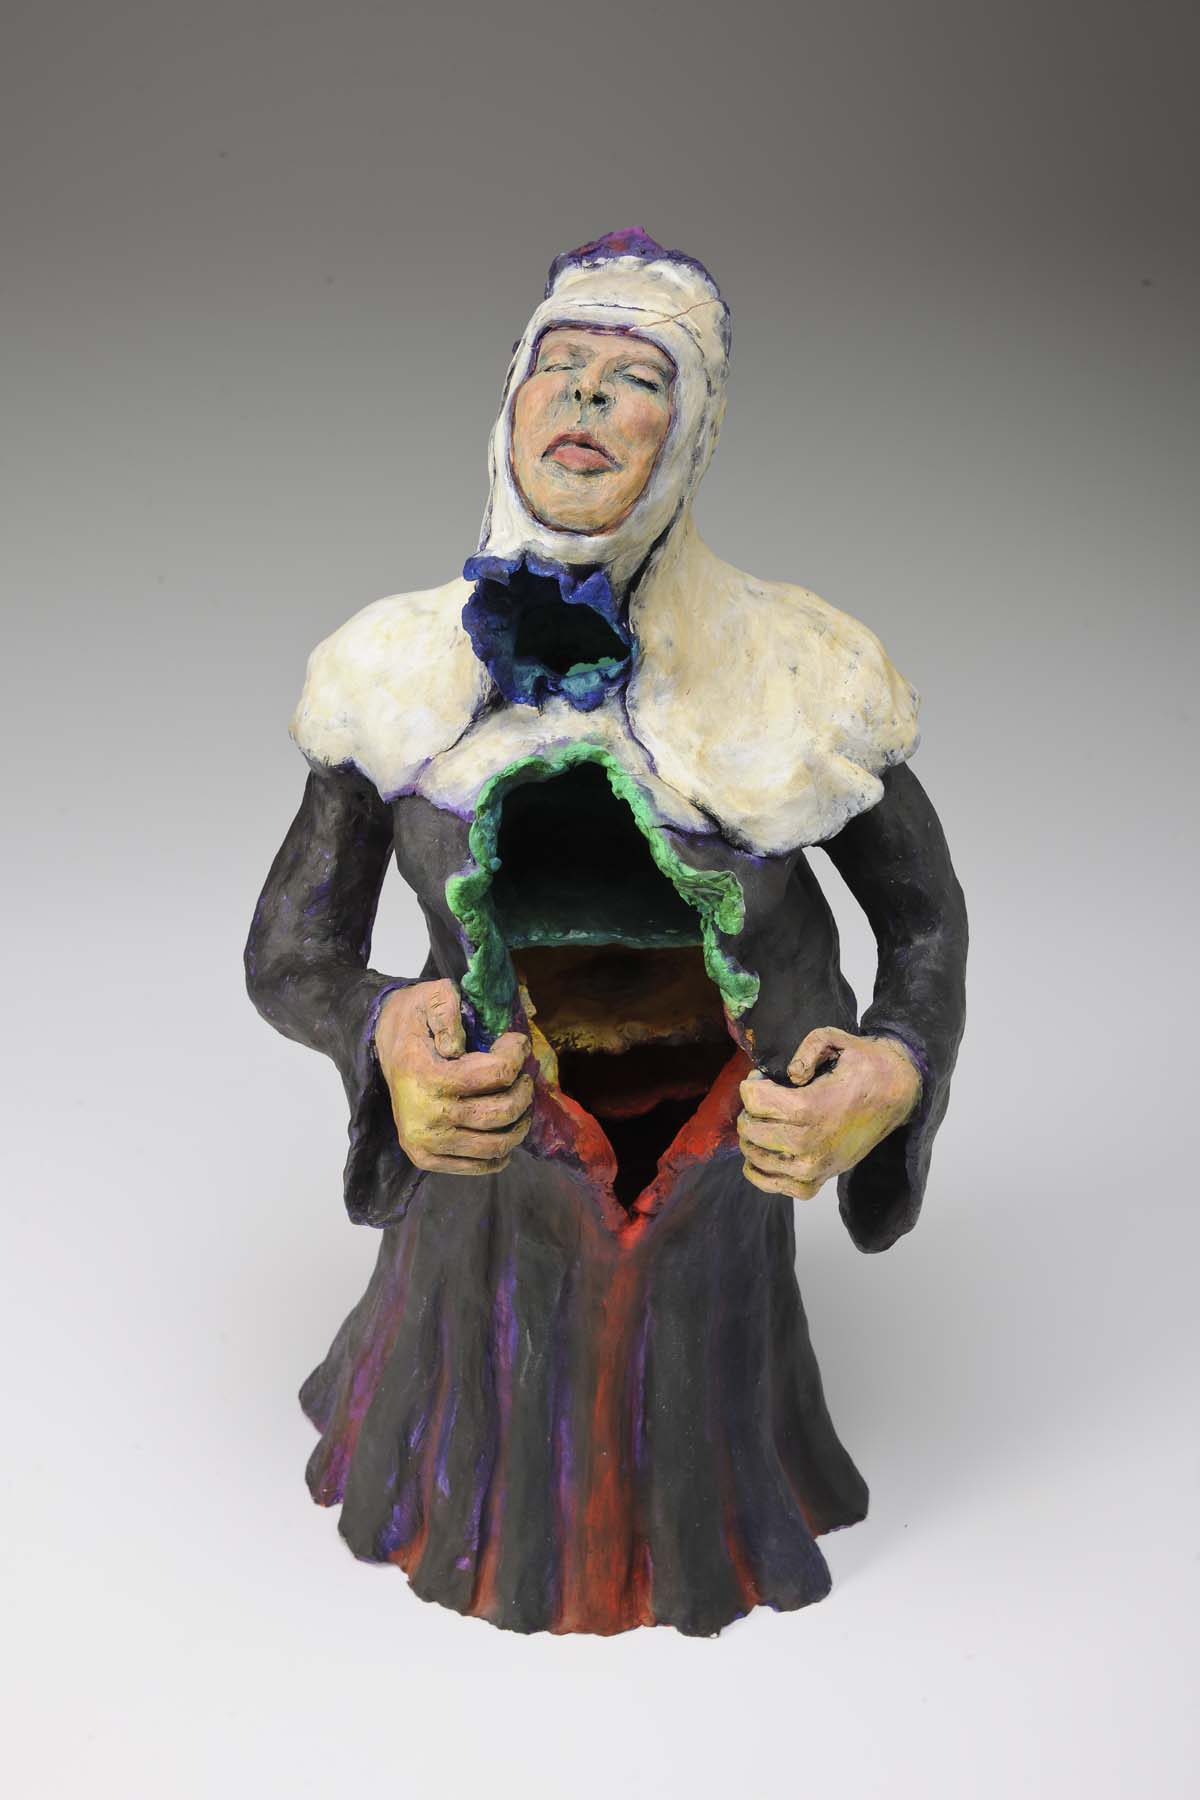 St_Teresa_by_sybil_archilbald_top_1200-sculpture-charkas-stained-glass.jpg